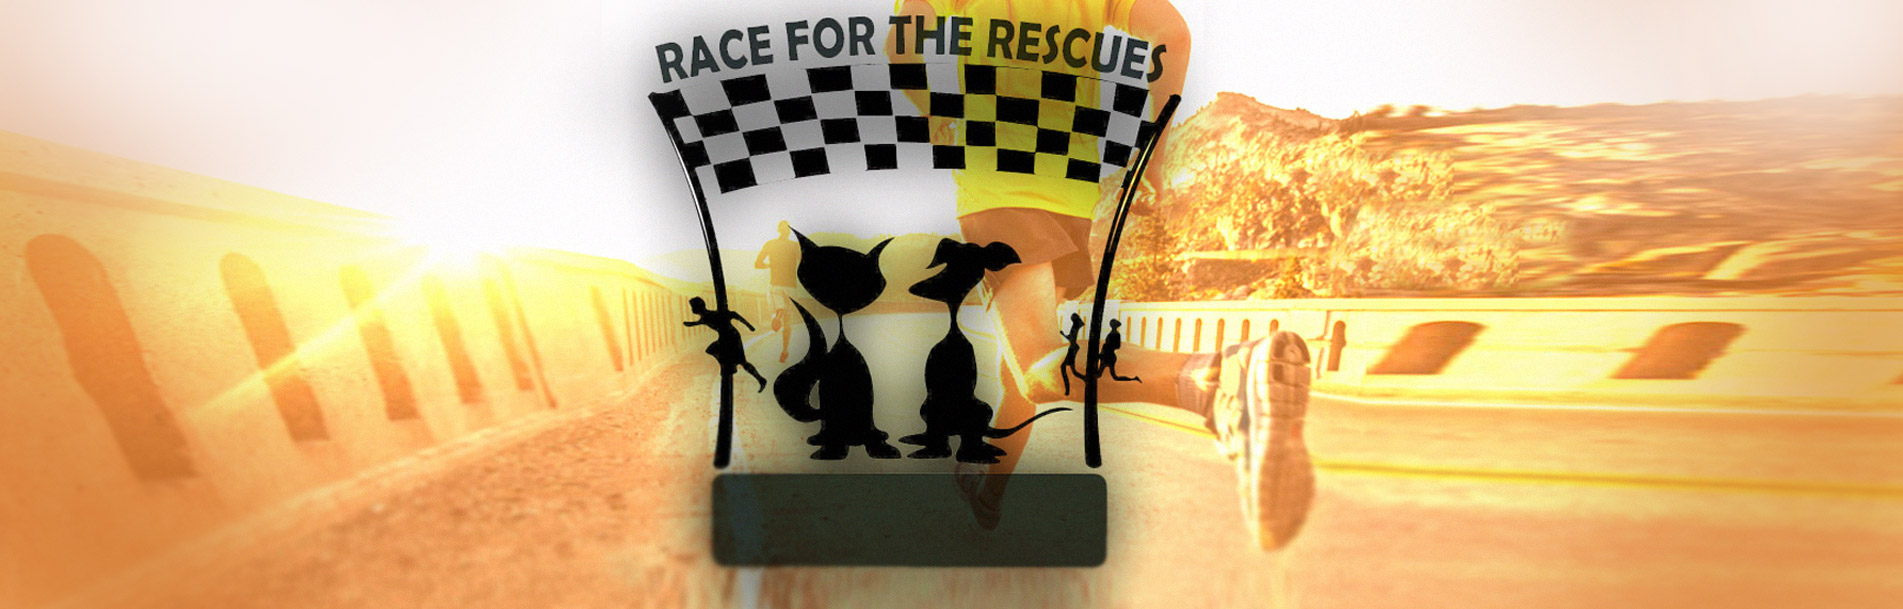 Race-for-the-Rescue2019